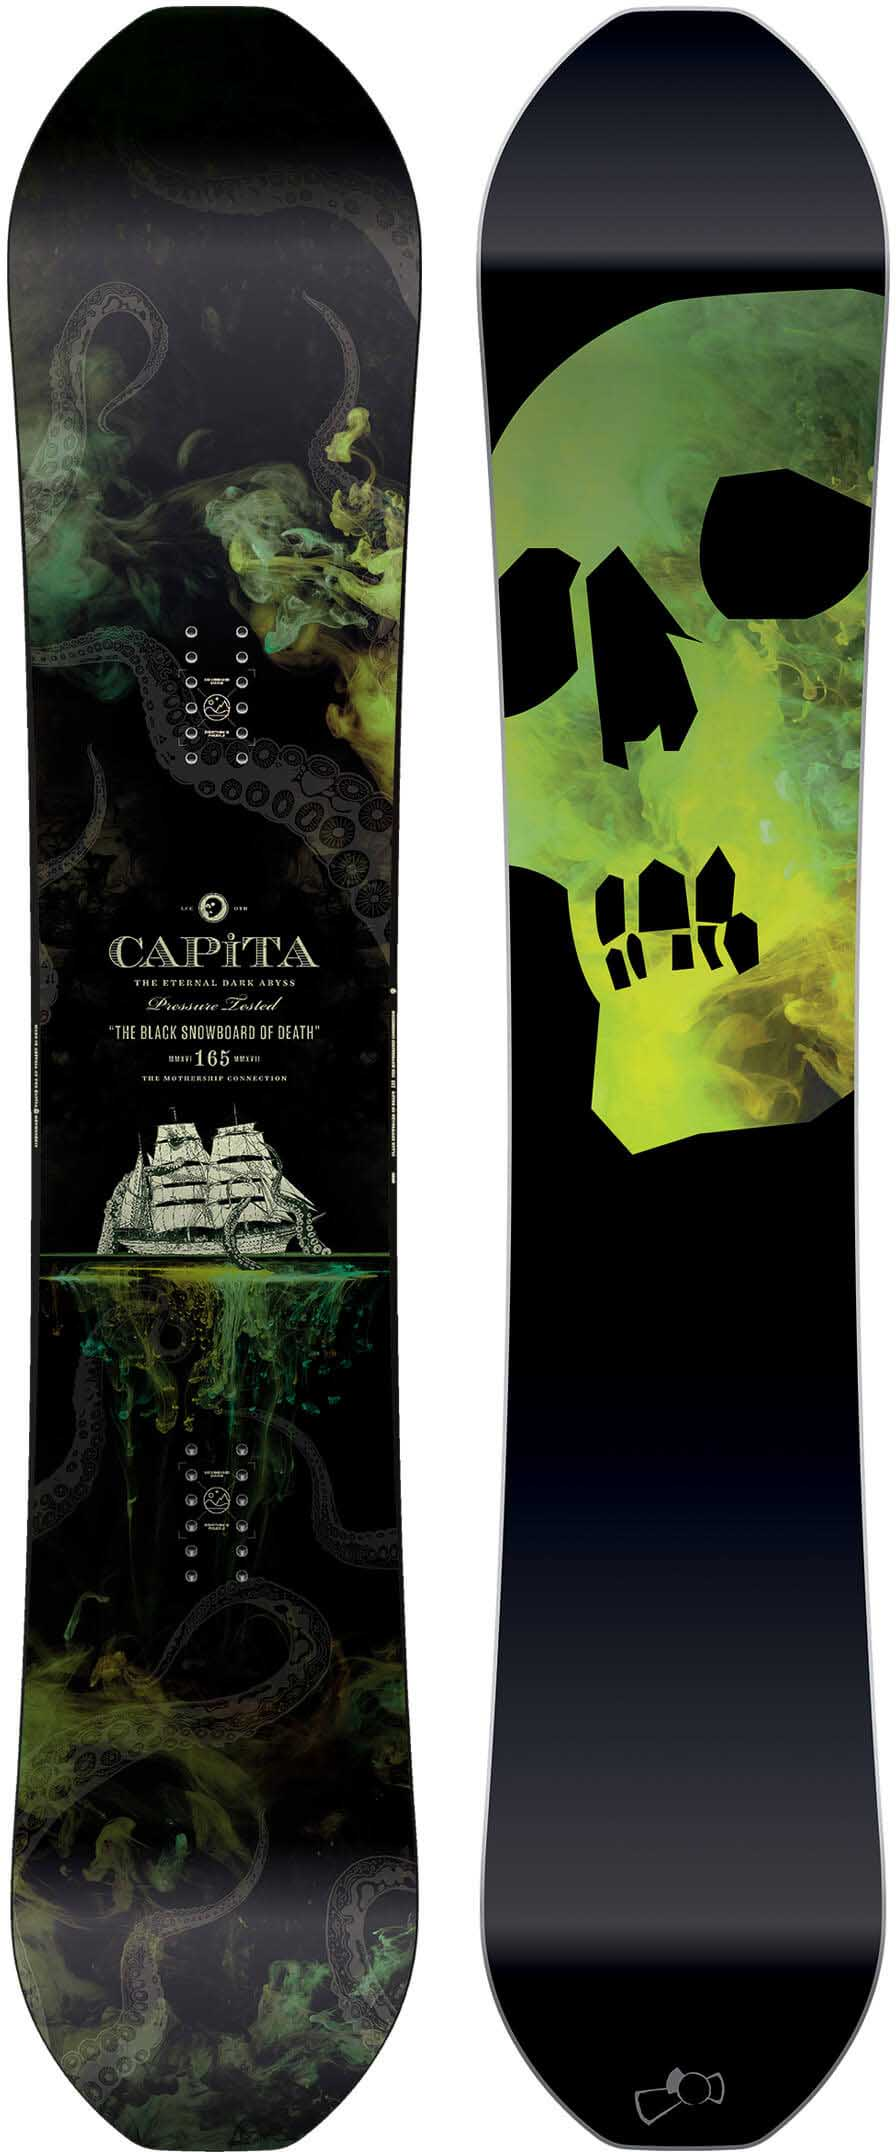 image capita-black-snowboard-of-death-165-jpg